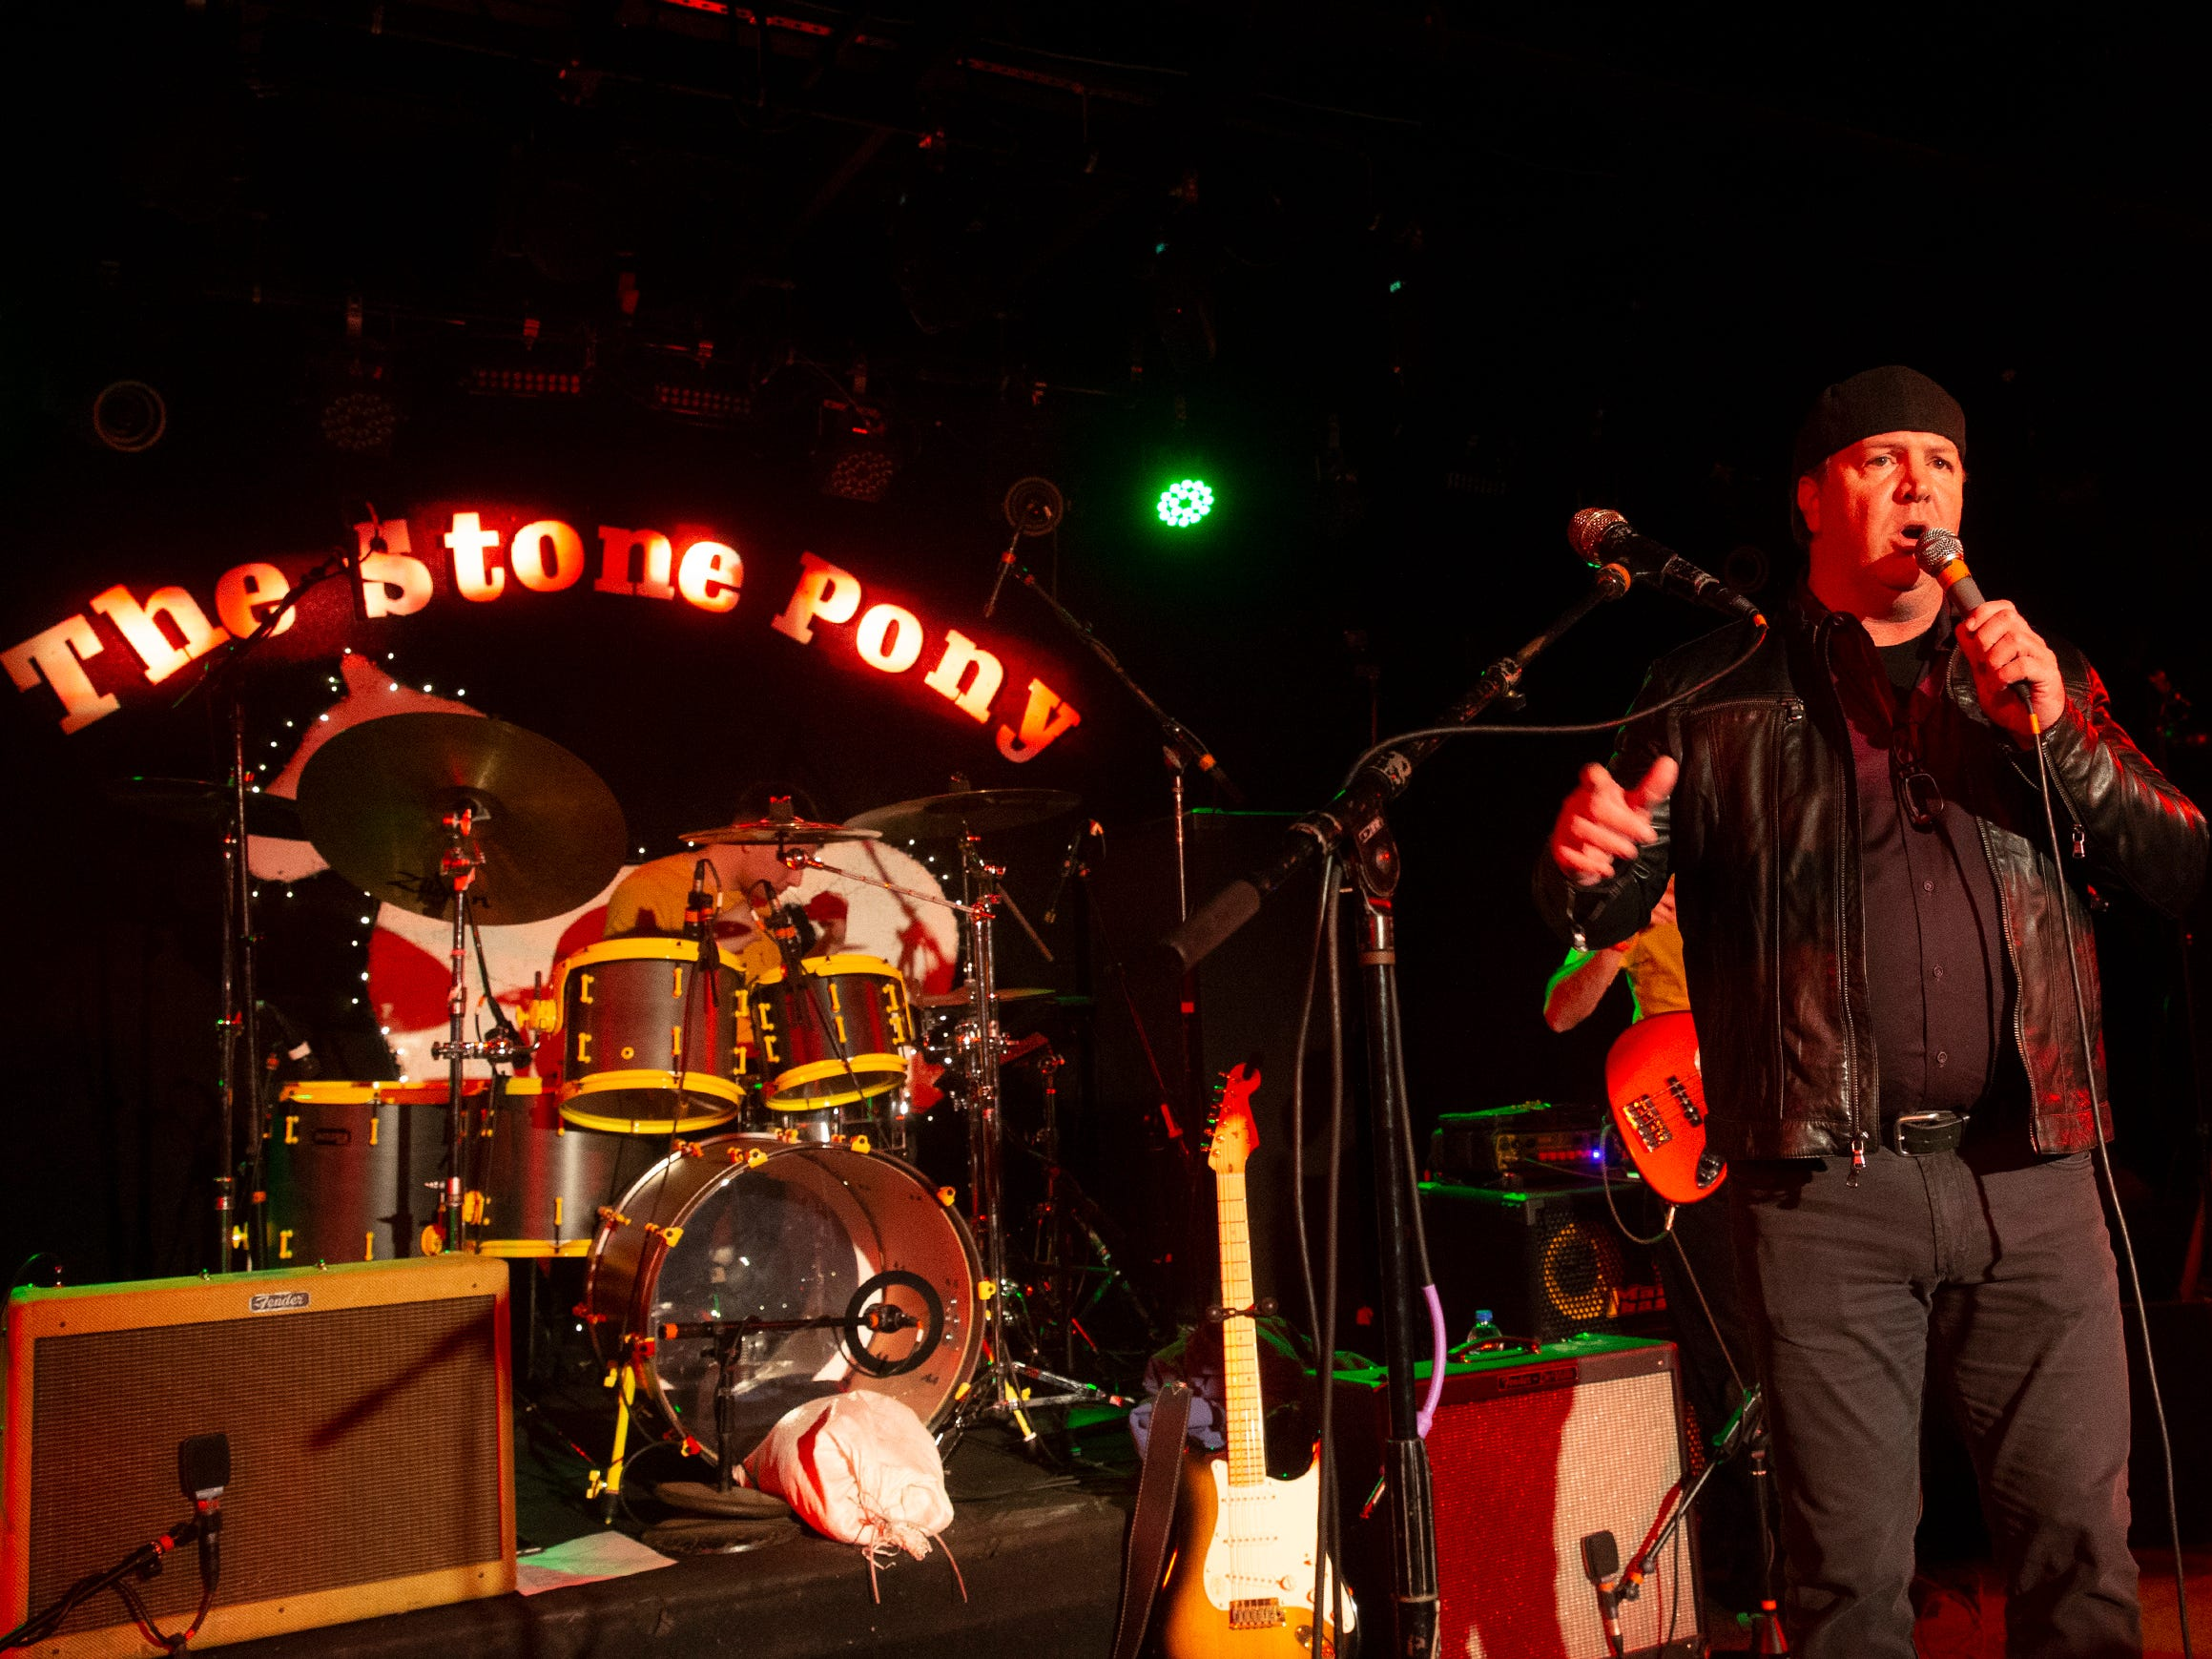 Tom Donovan, publisher of the Asbury Park Press thanks the audience for coming out for show and helping Mary's Place with their contribution as he introduces Quincy Mumford and the Reason Why's tribute to Prince at the Stone Pony in Asbury Park on December 7, 2018.